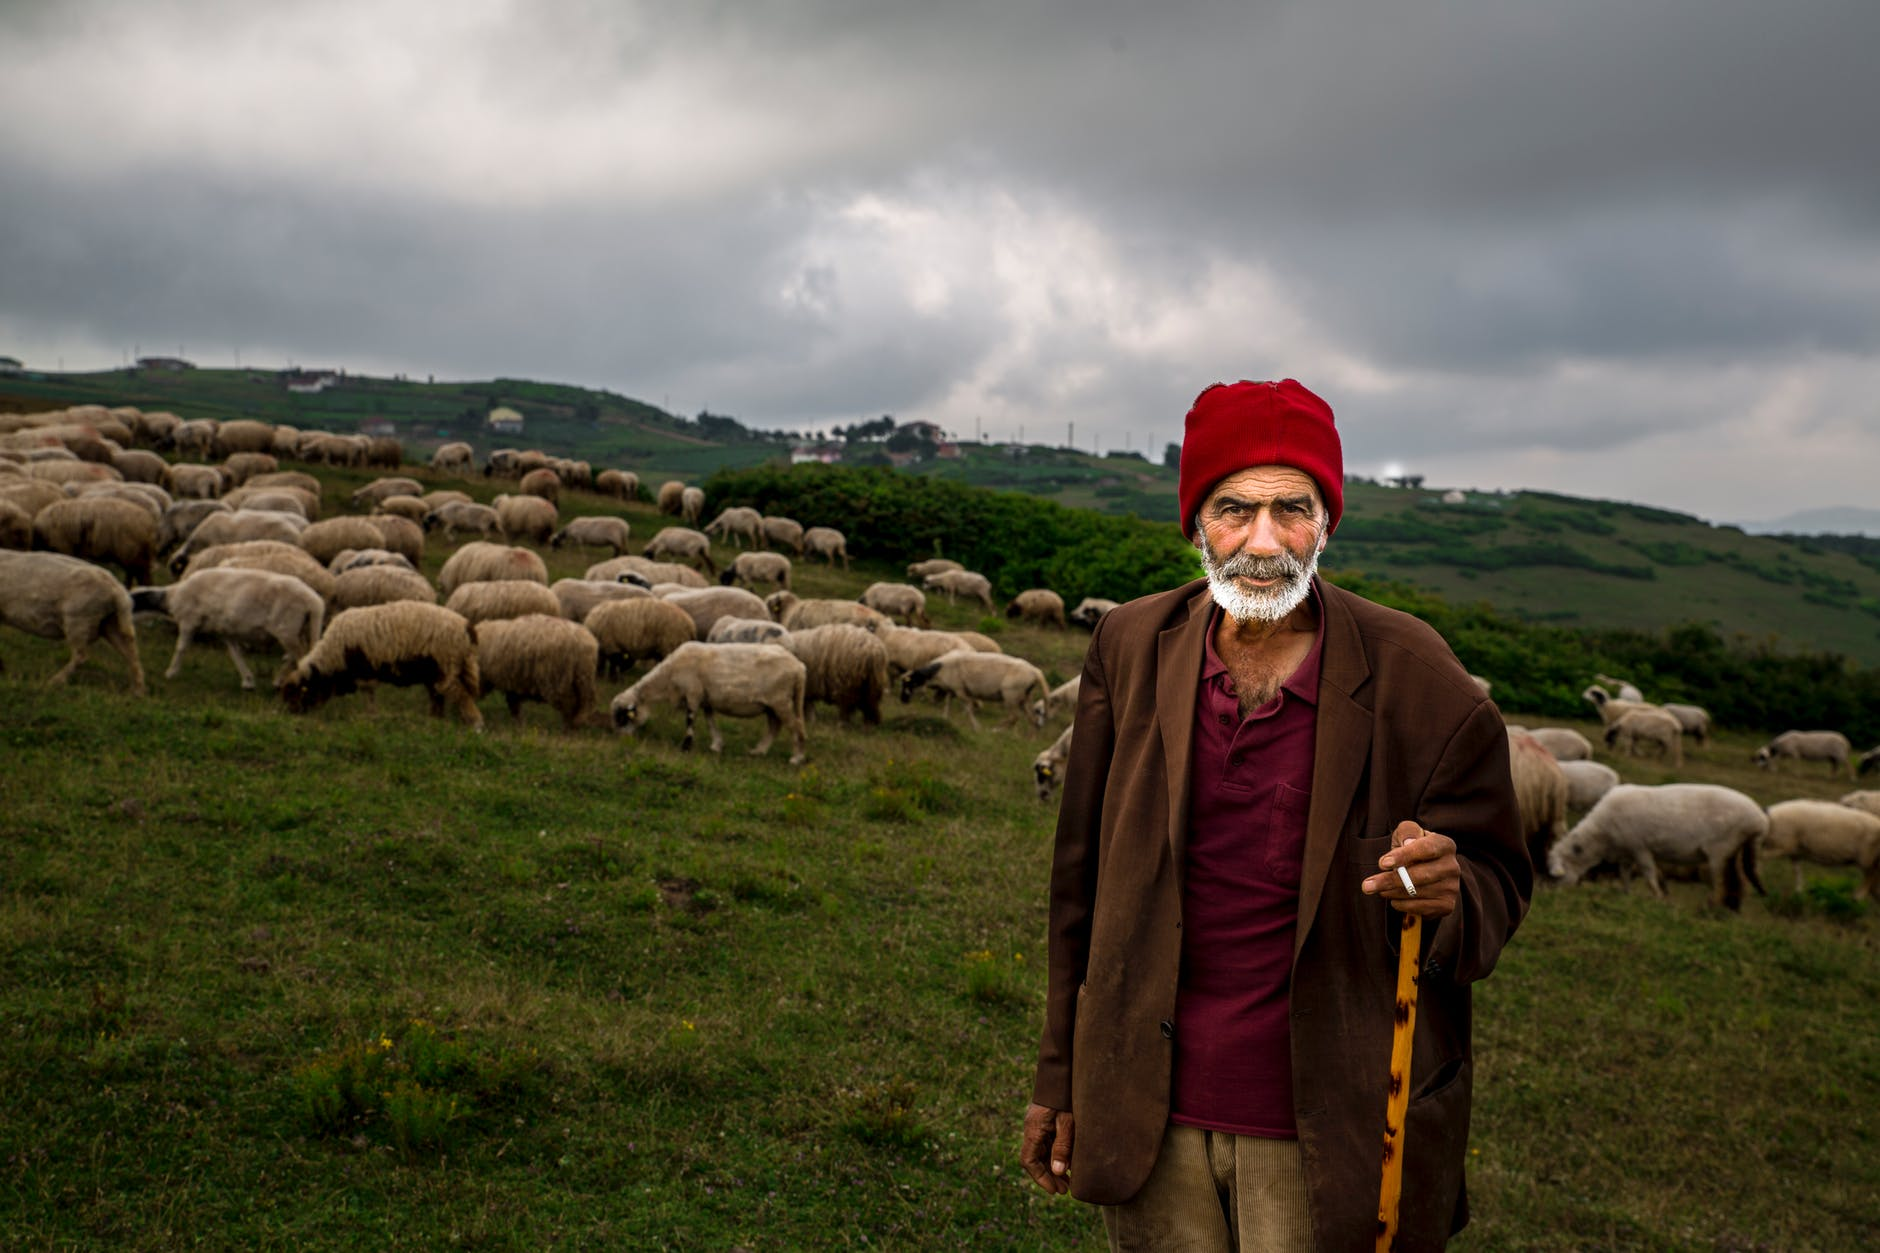 photo of old man with herd of sheep